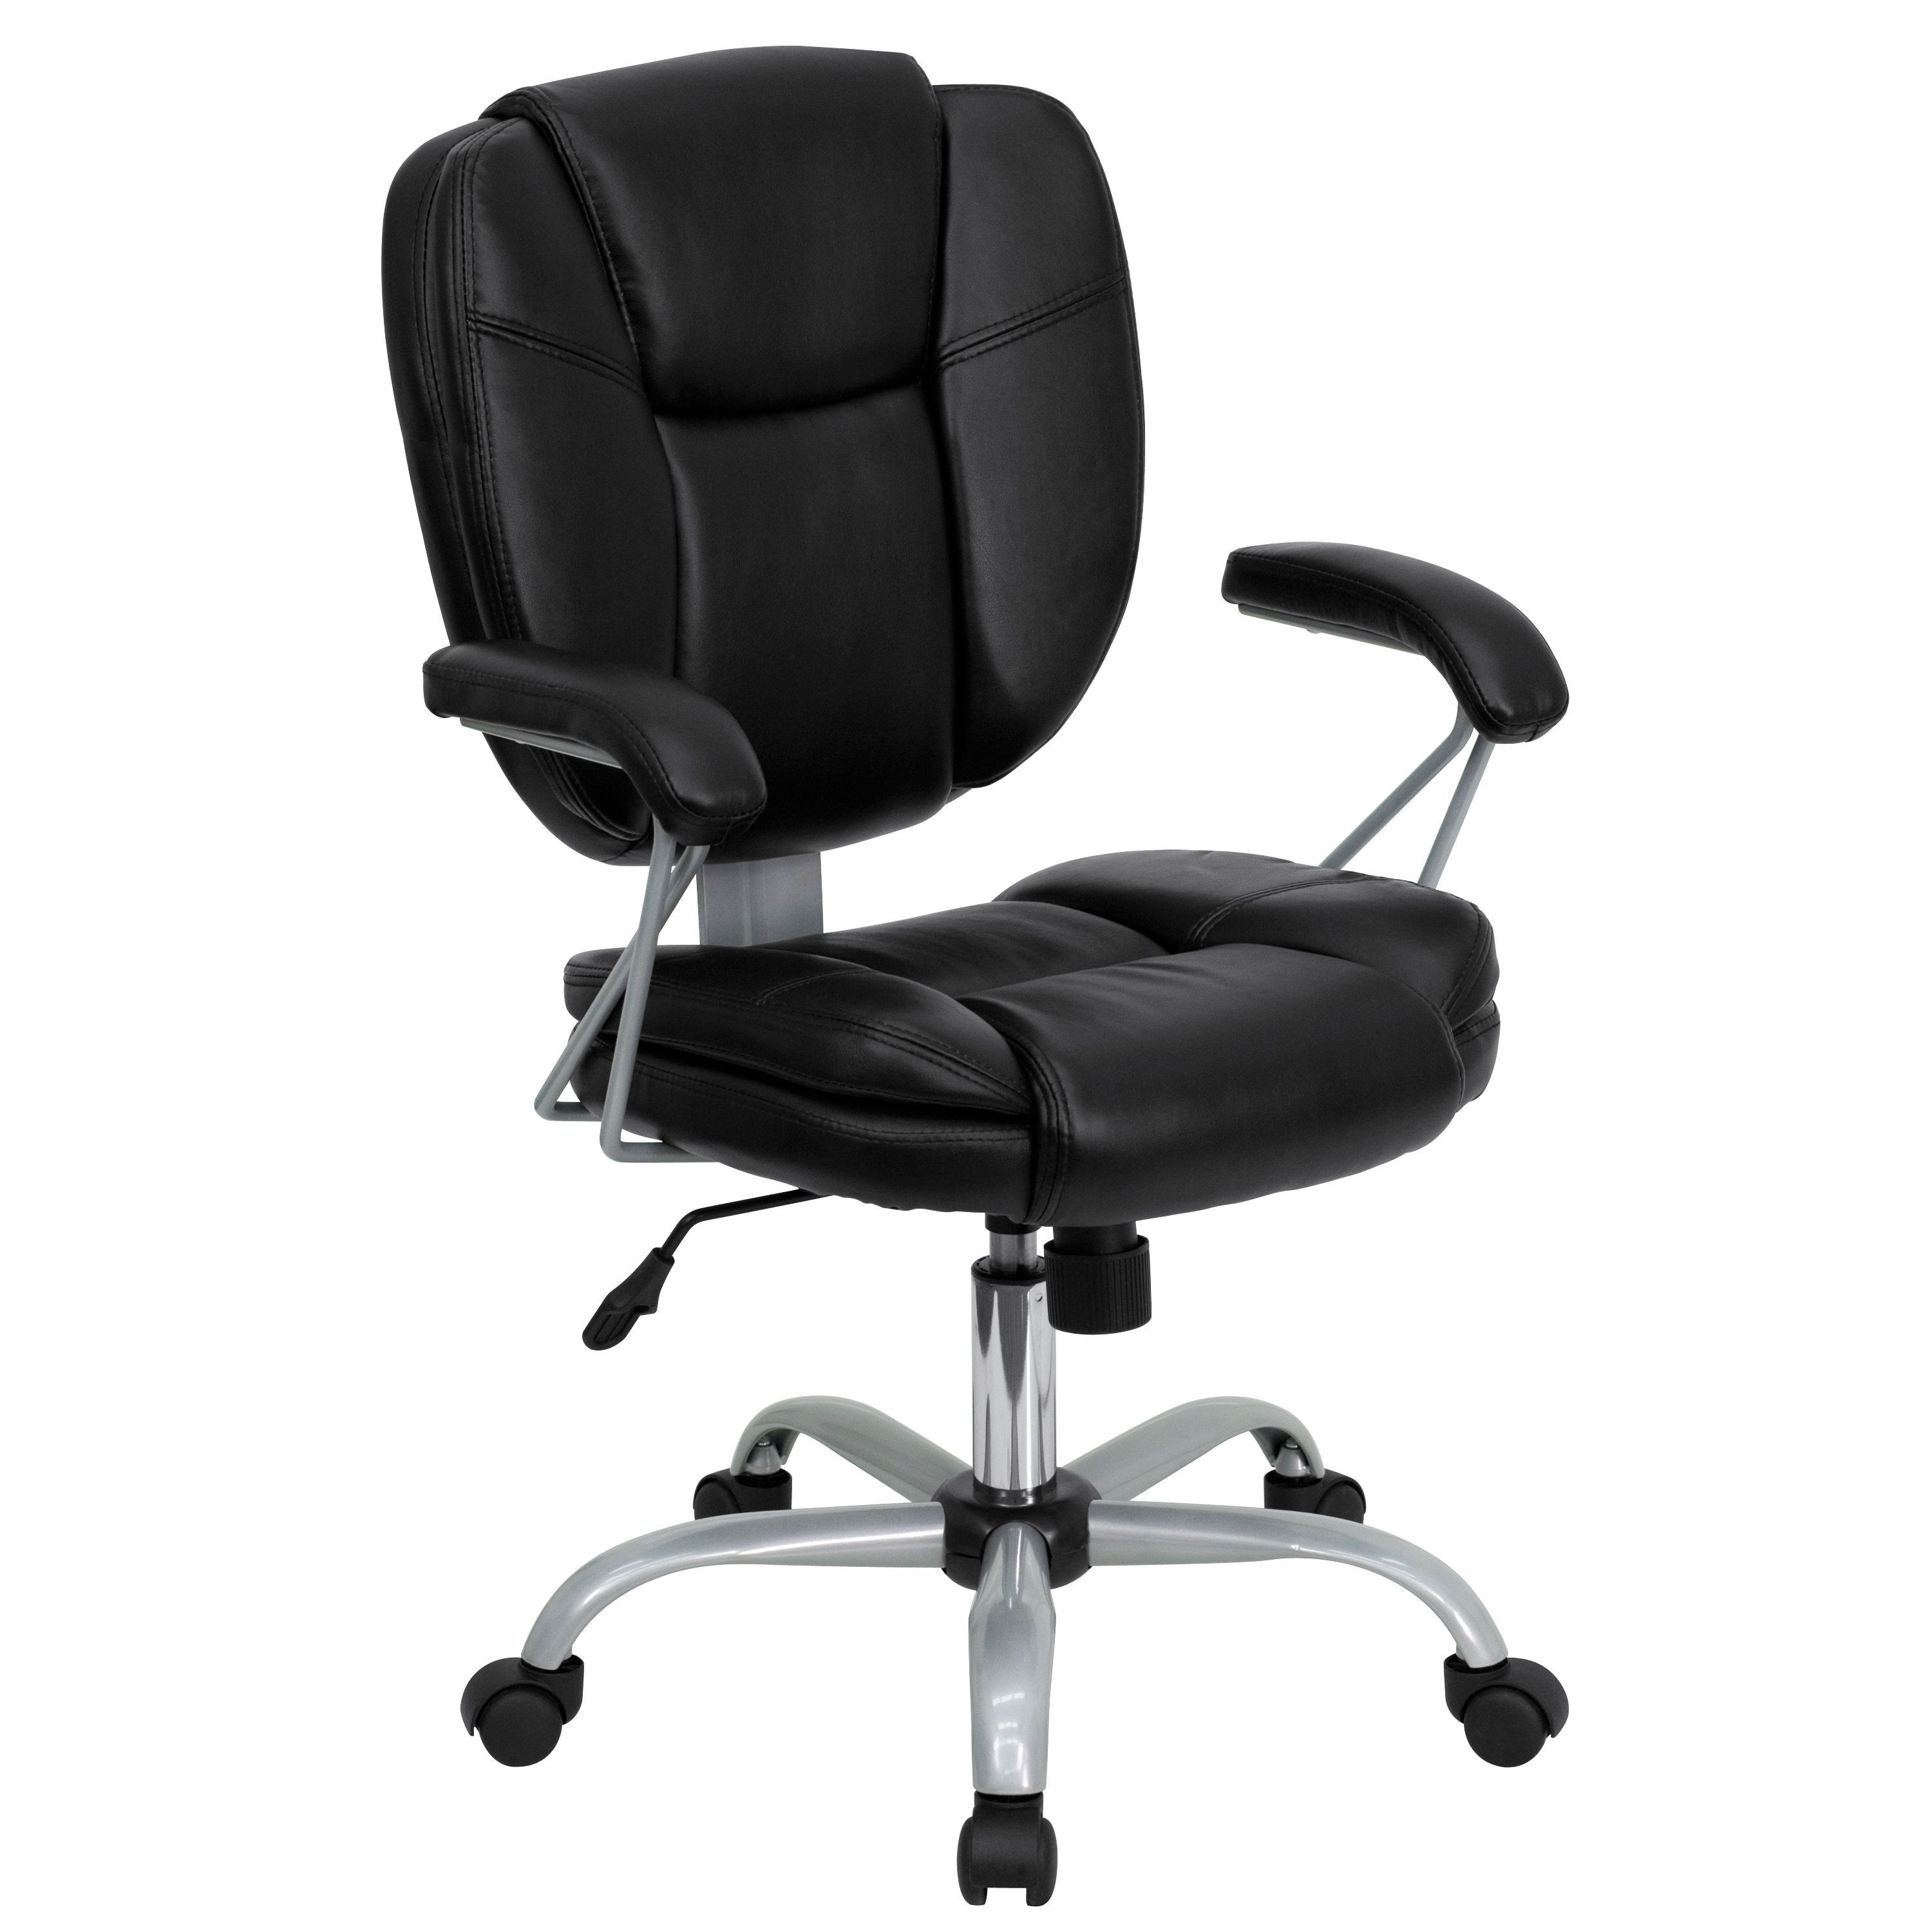 Herst nylon metal swivel adjustable high back office chair